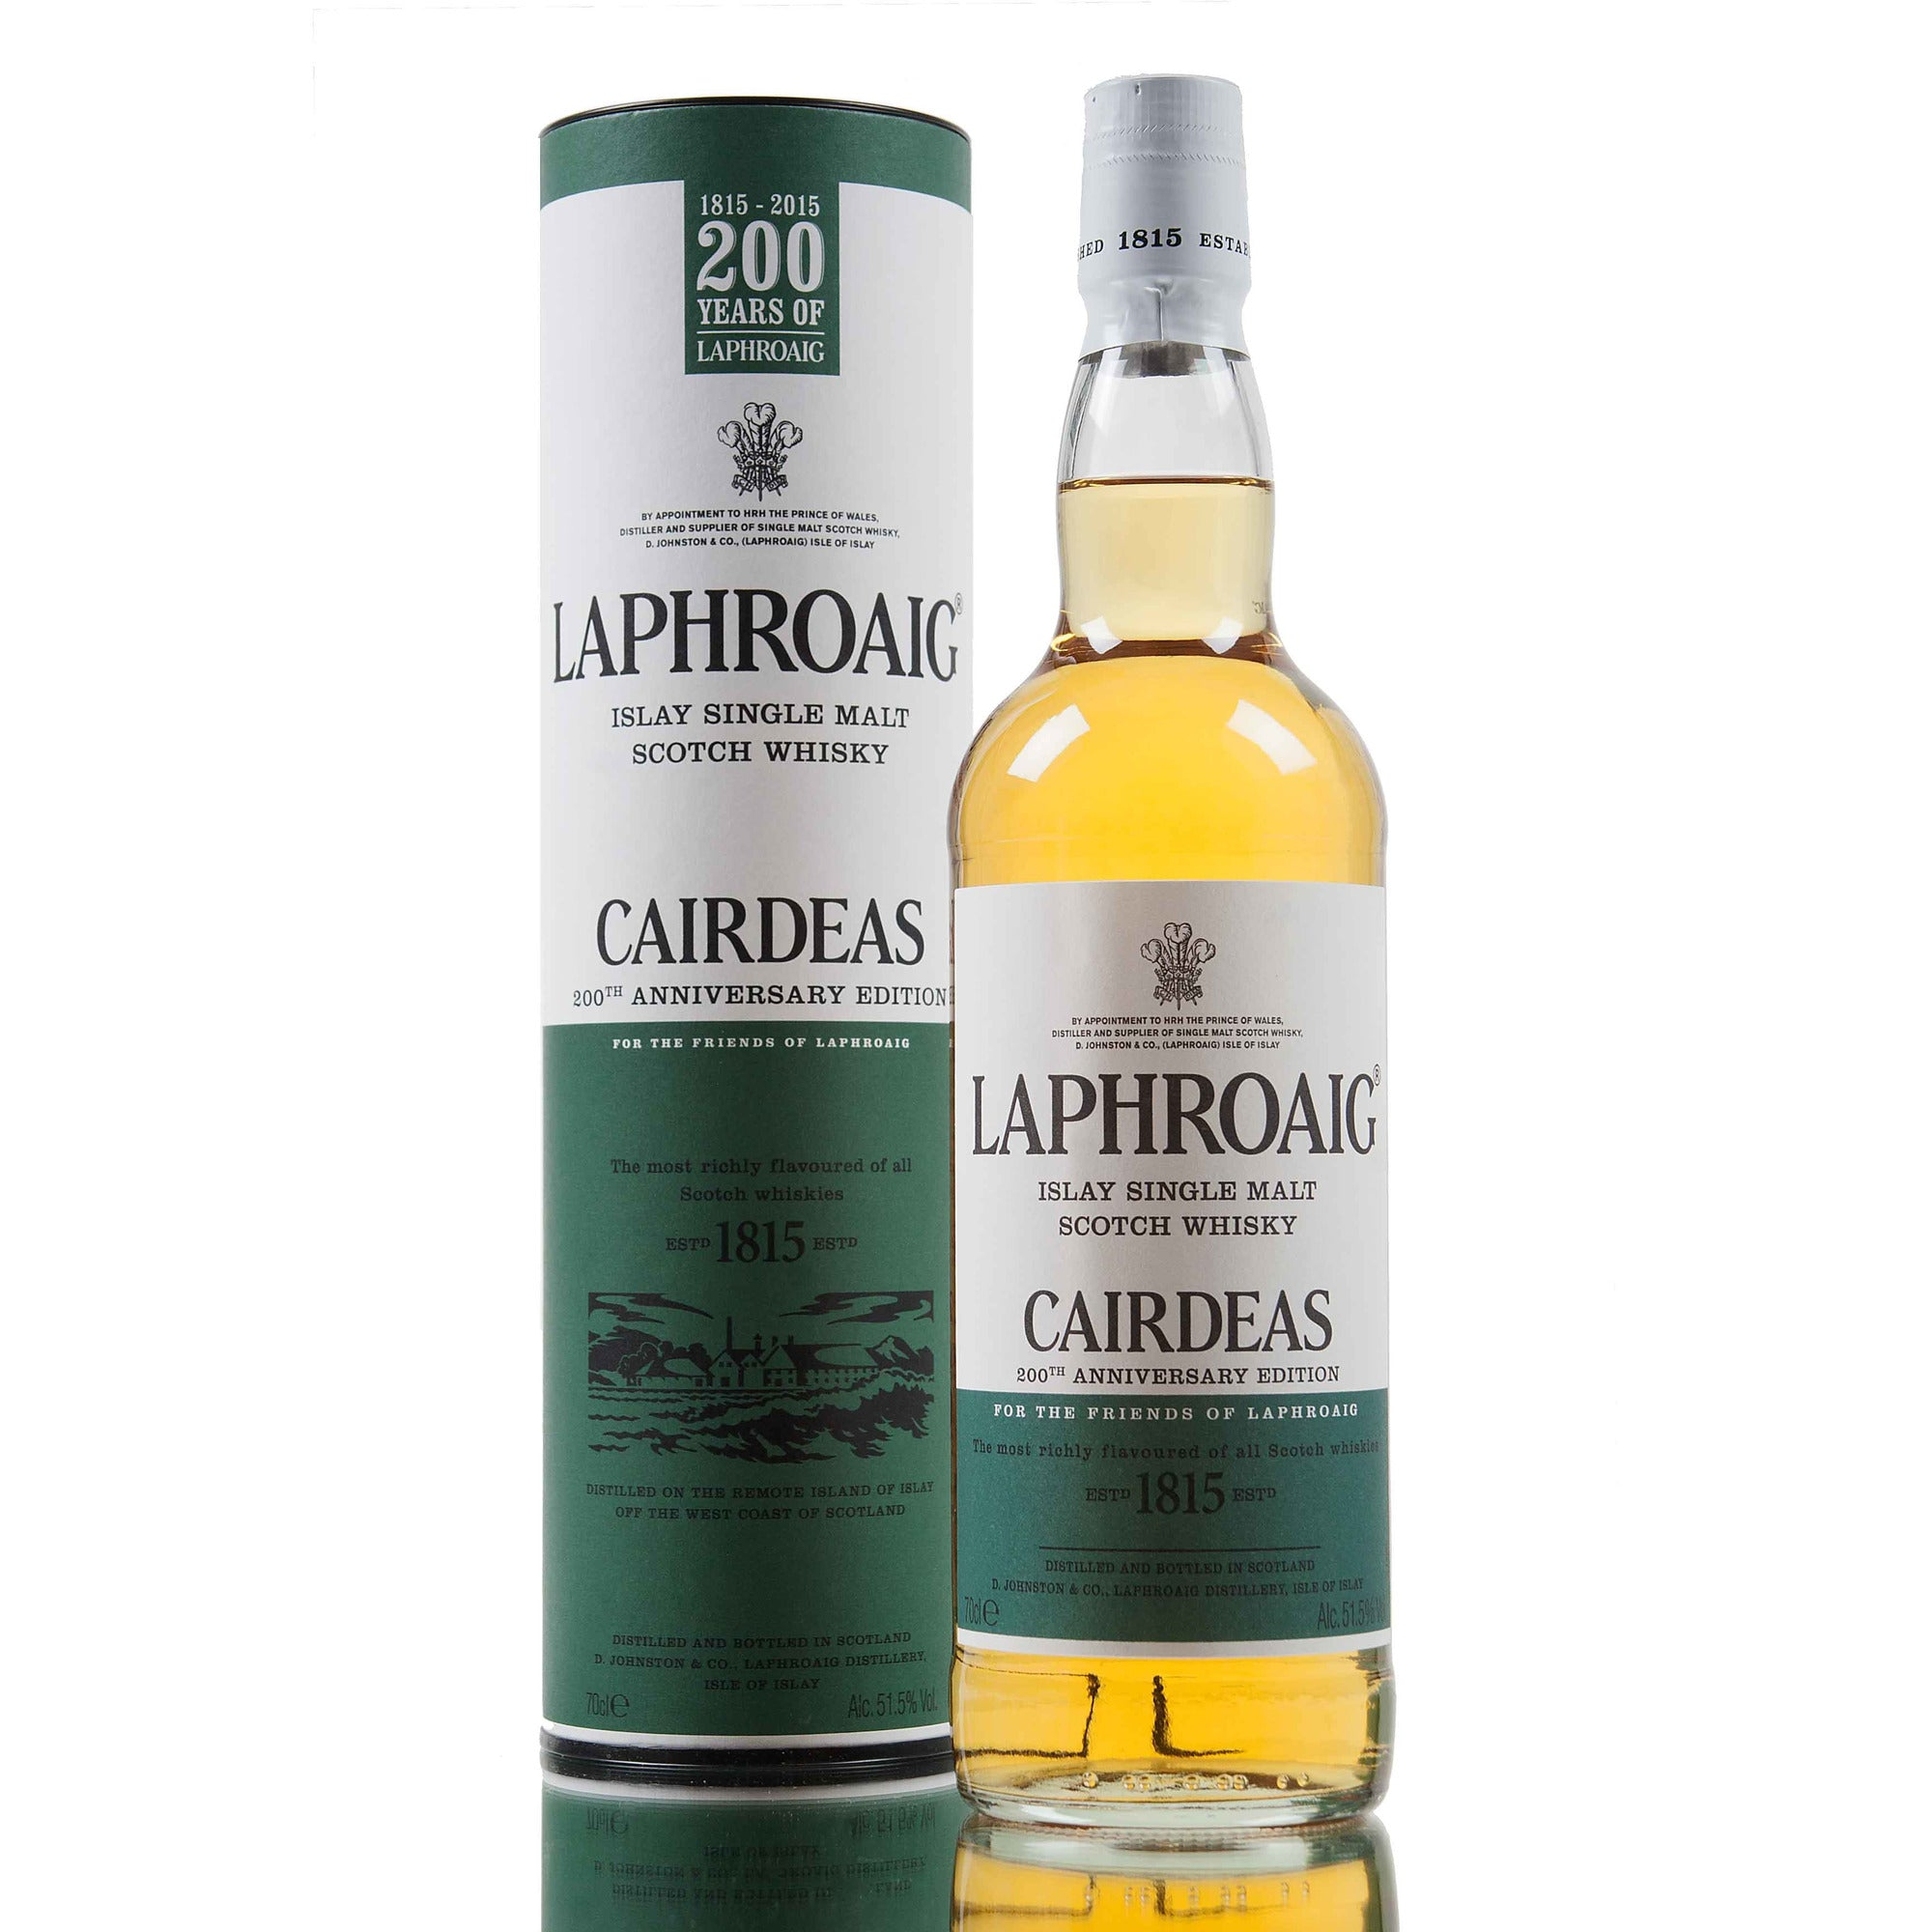 Laphroaig Cairdeas Scotch Whisky